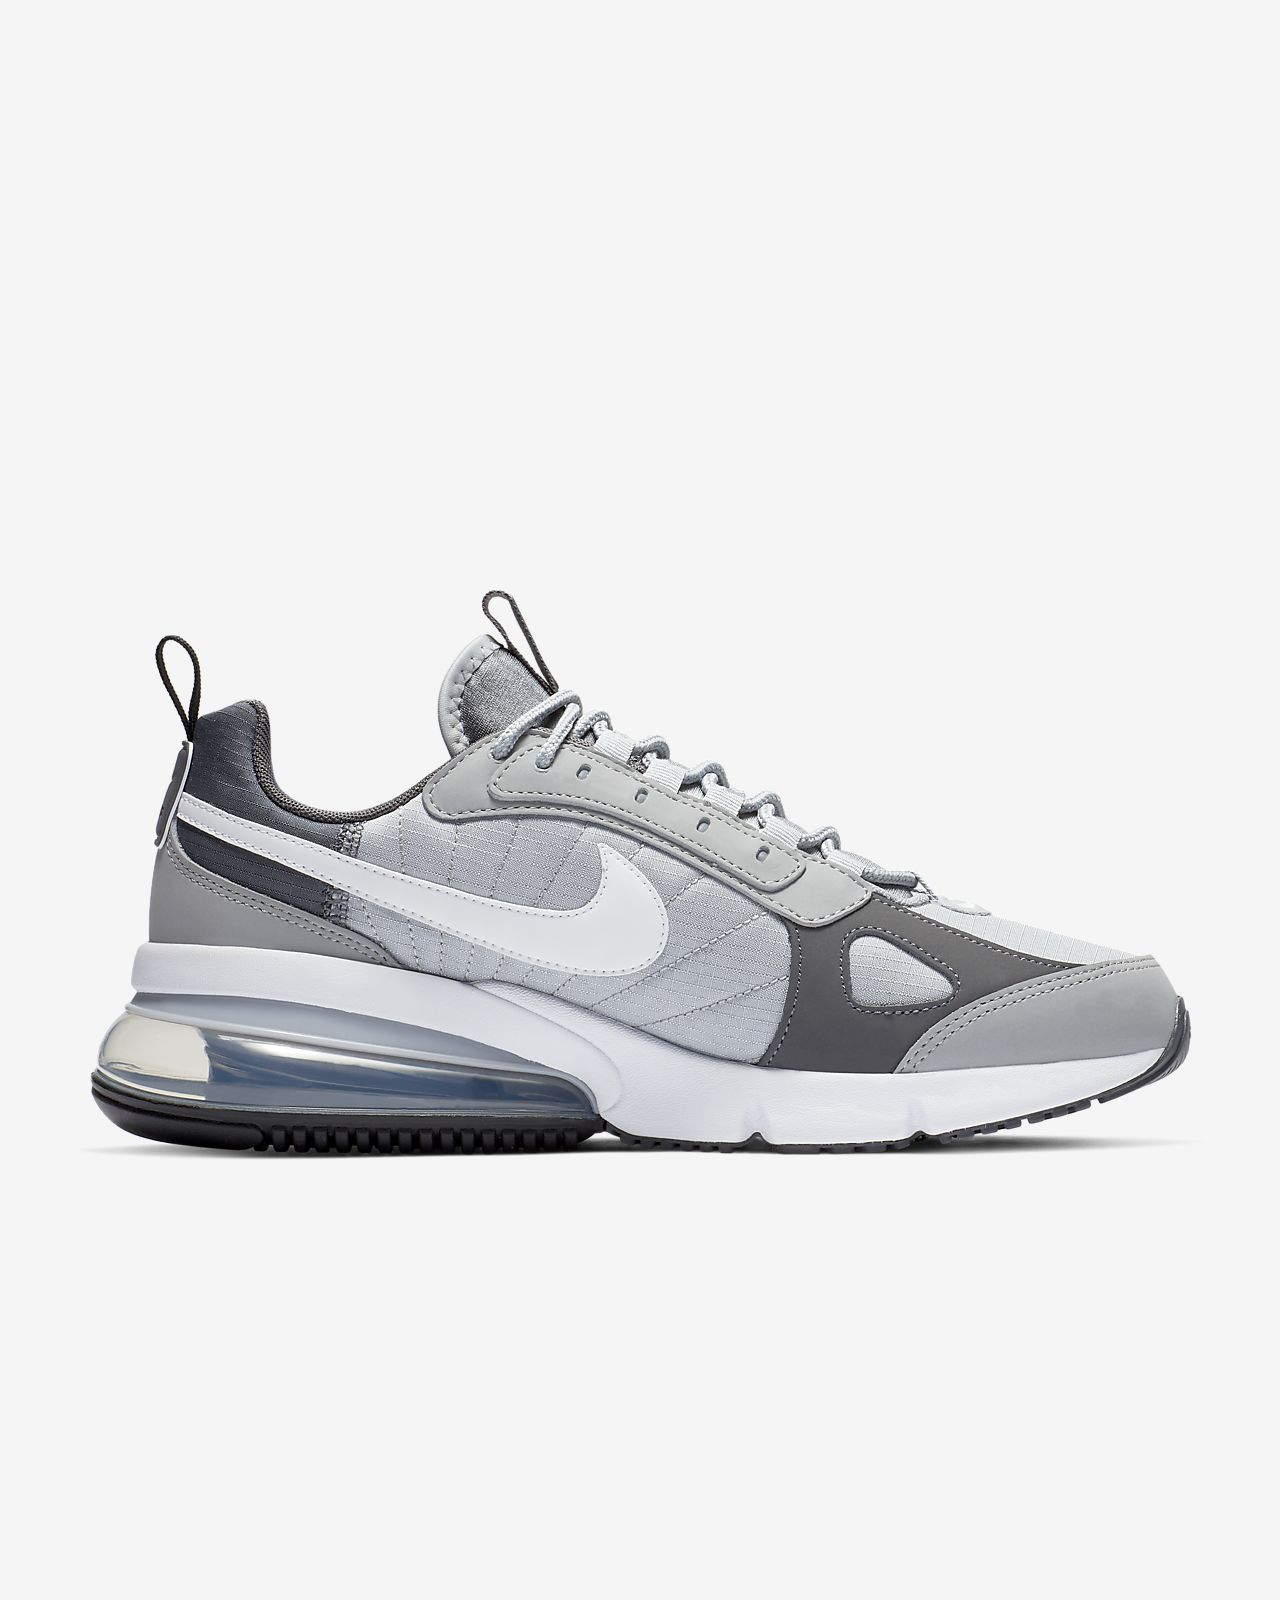 finest selection 599ac 465bd ... Chaussure Nike Air Max 270 Futura pour Homme